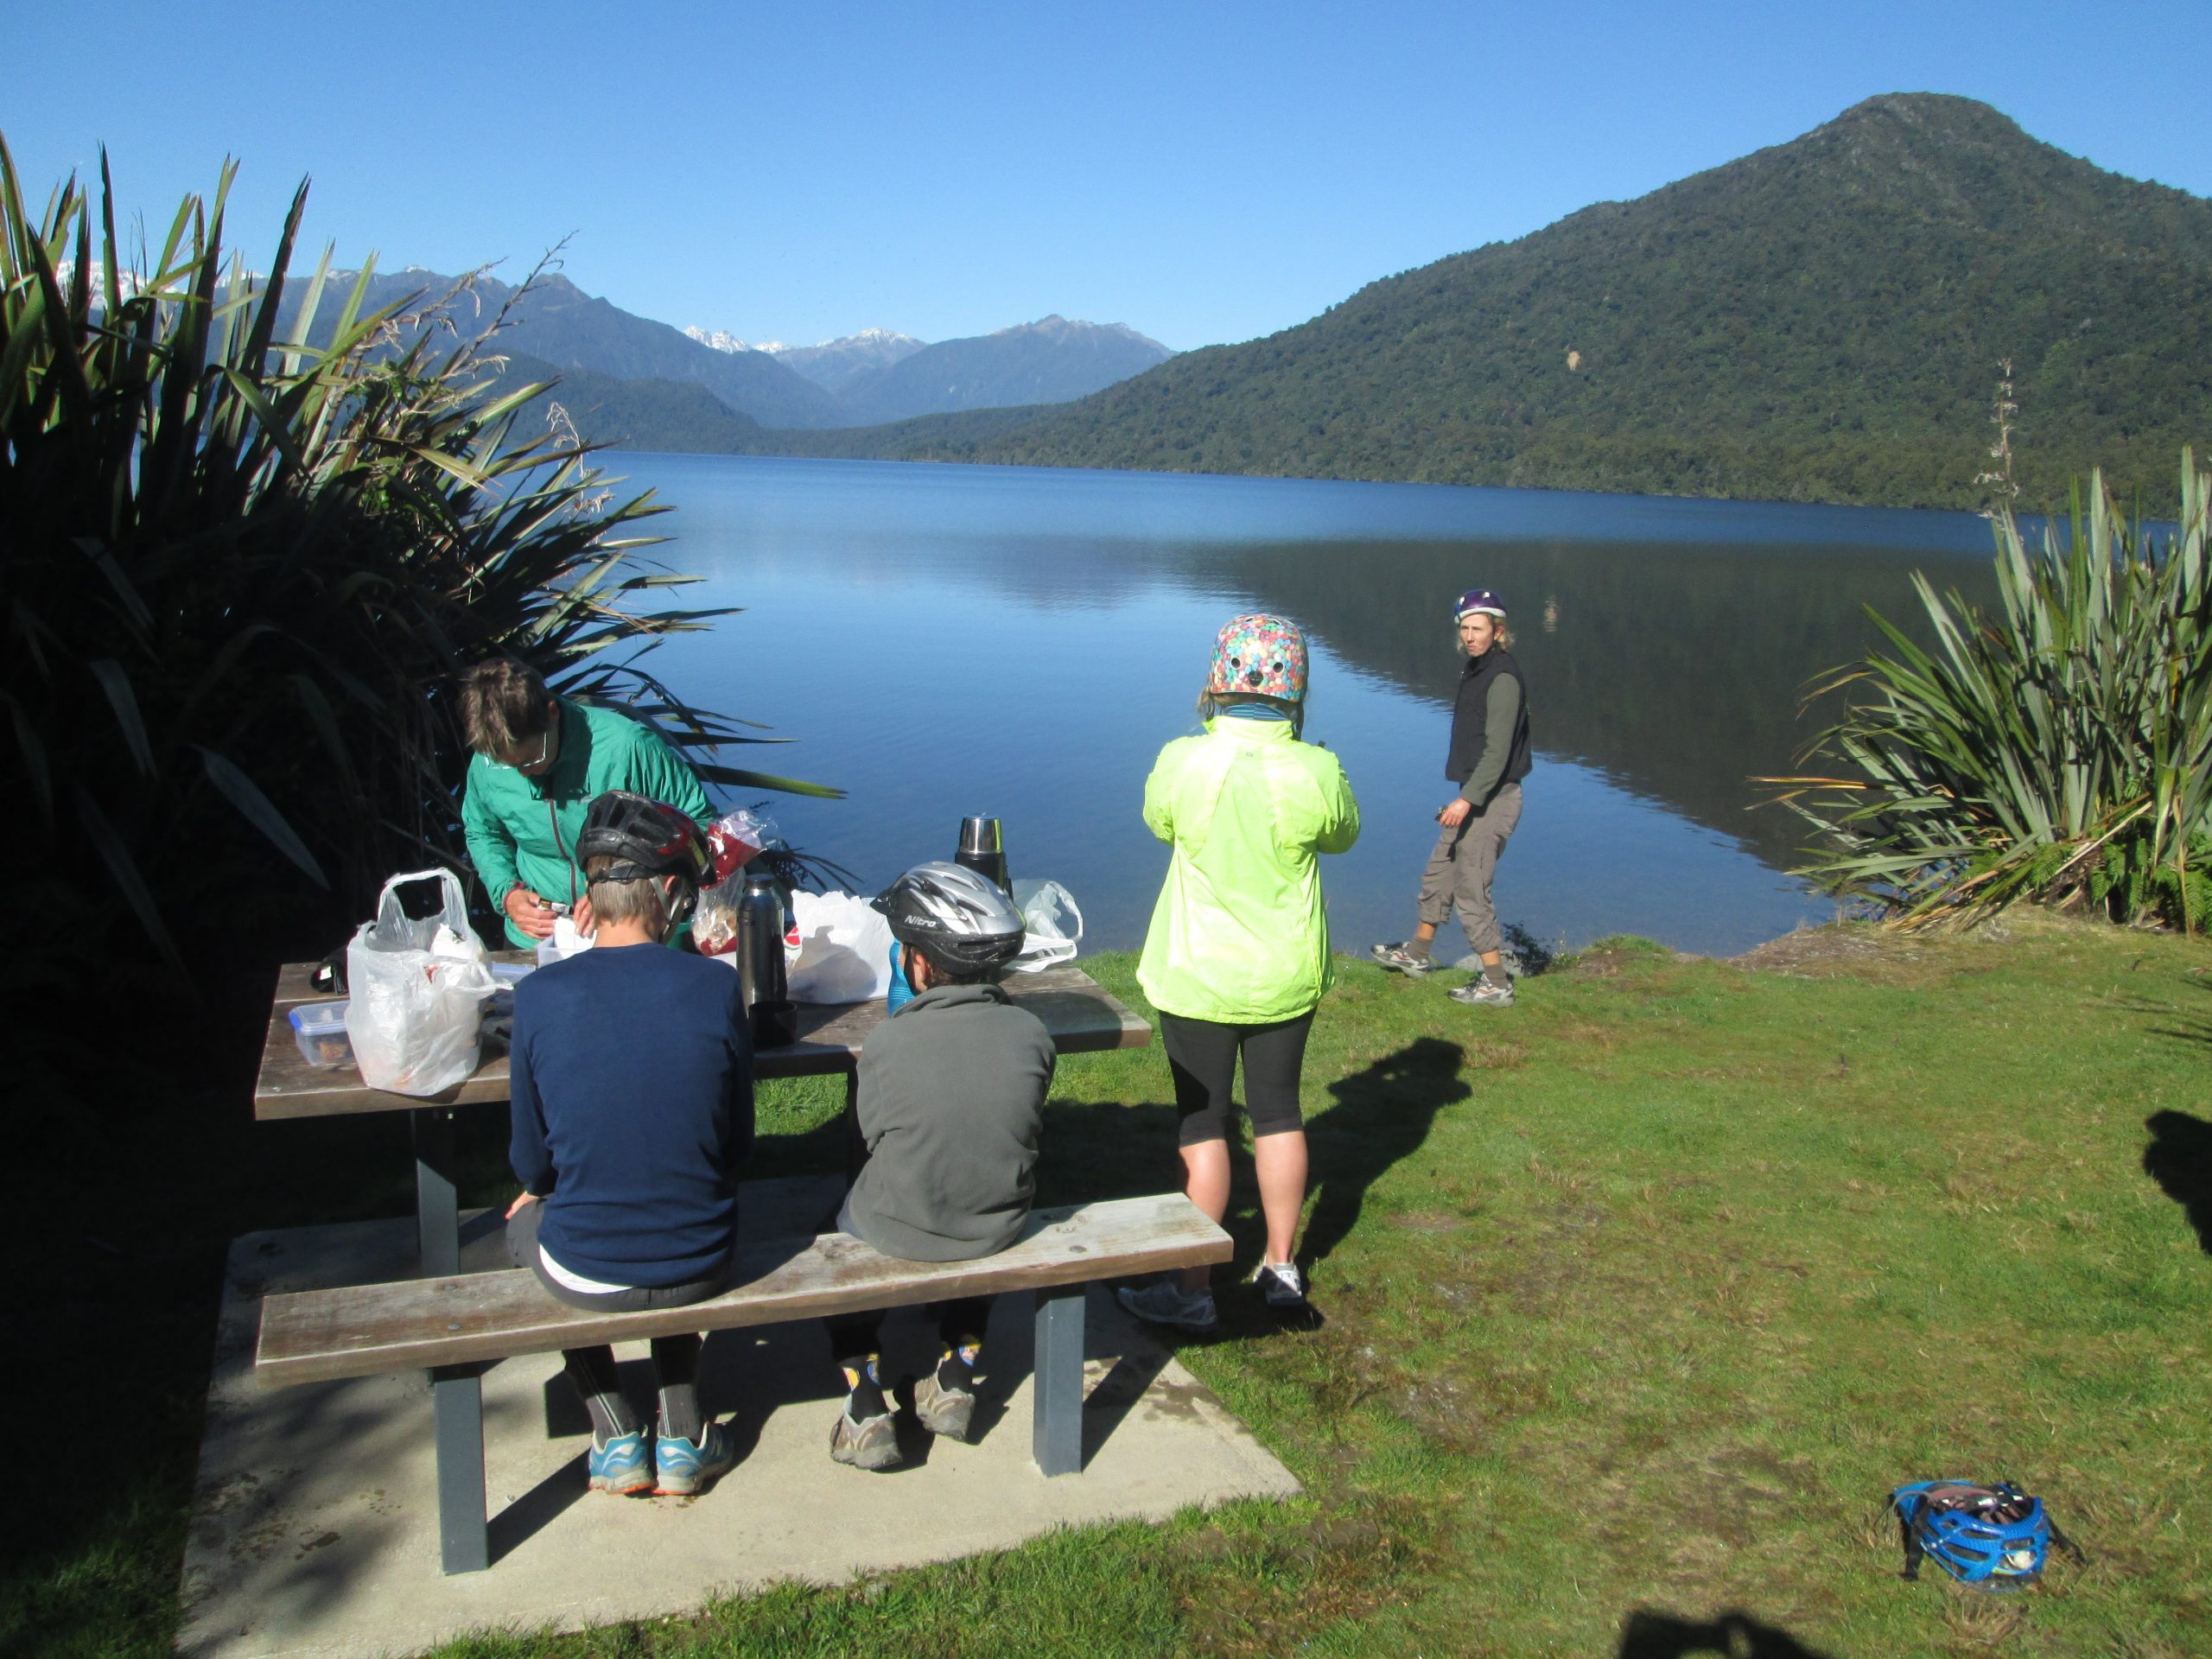 West Coast Wilderness Trail – An inspiring story about bike touring with kids.